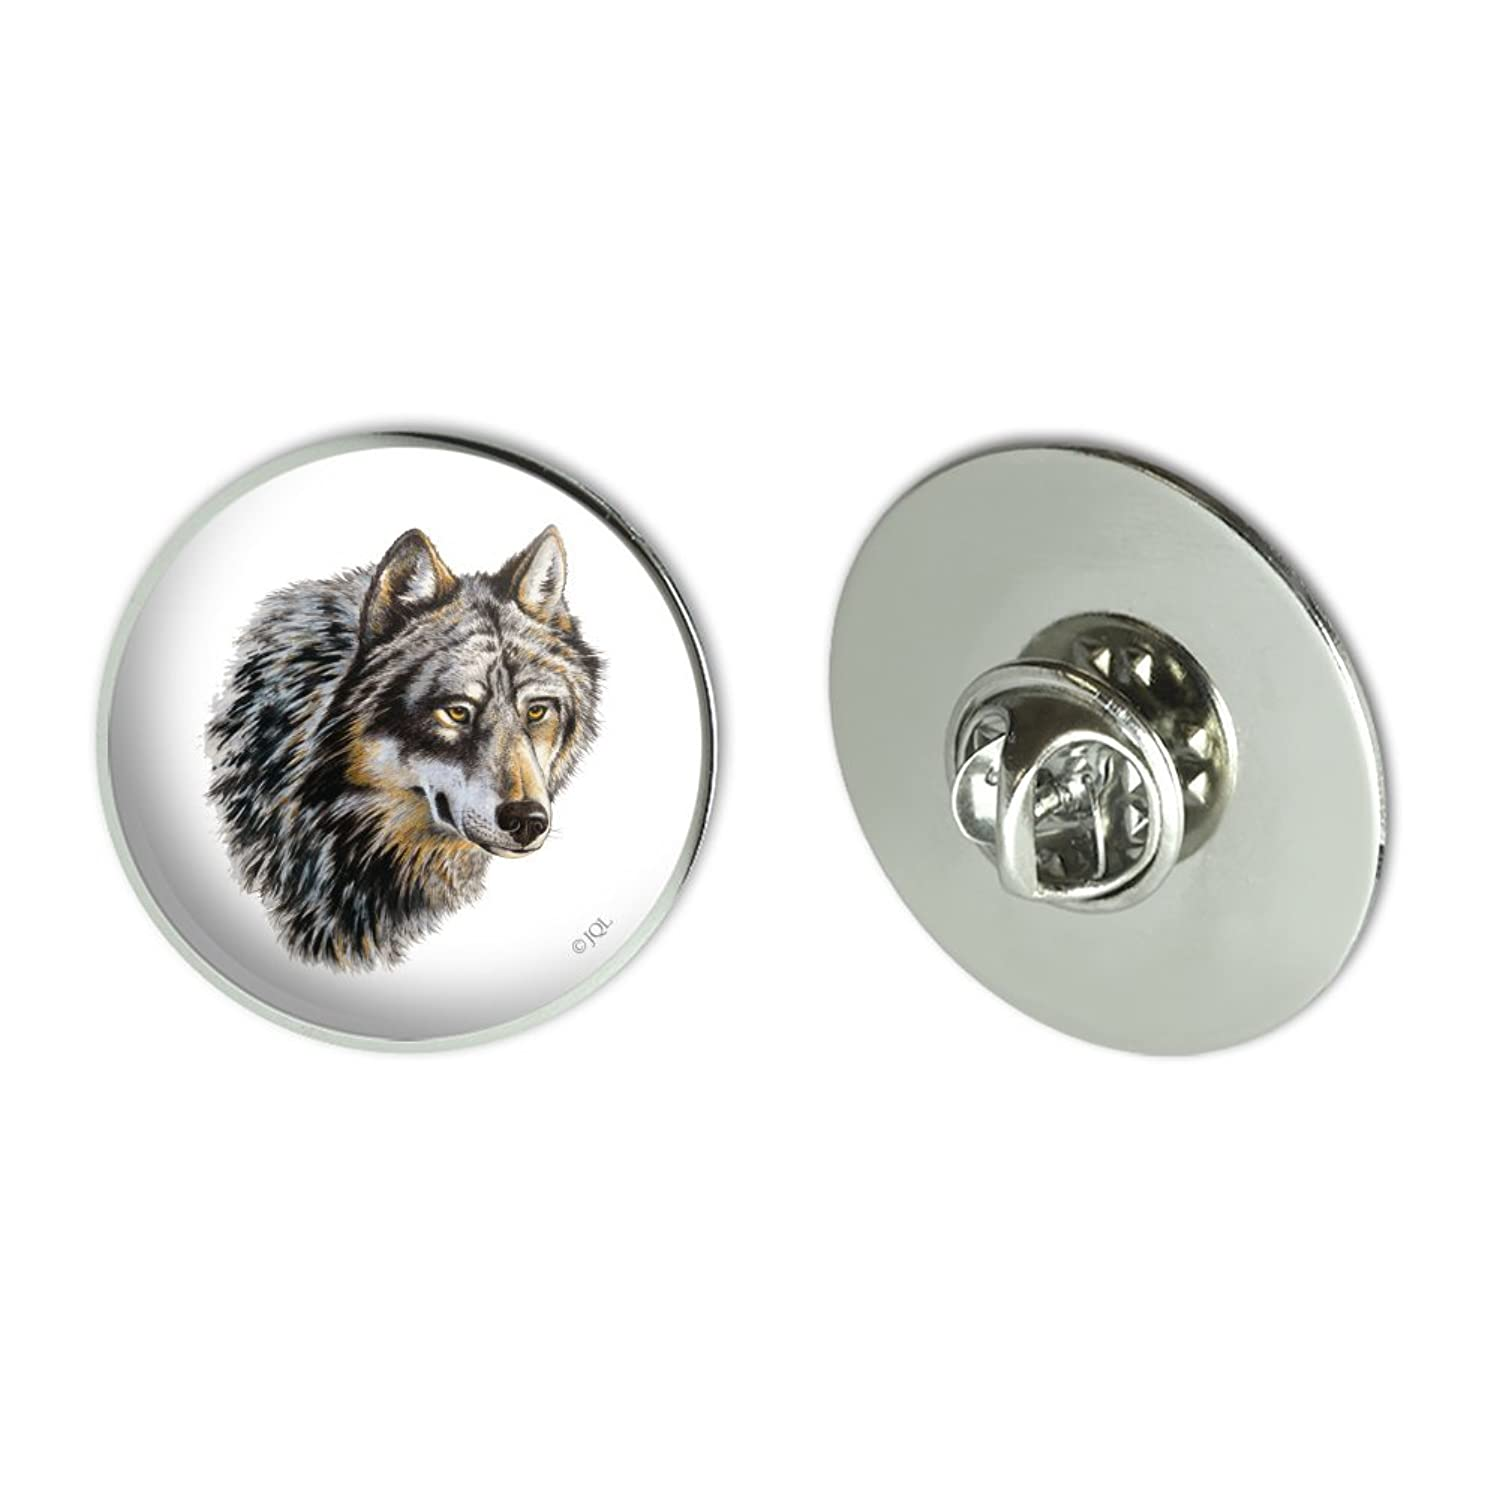 "Wild Wolf Head Metal 1.1"" Tie Tack Hat Lapel Pin Pinback"